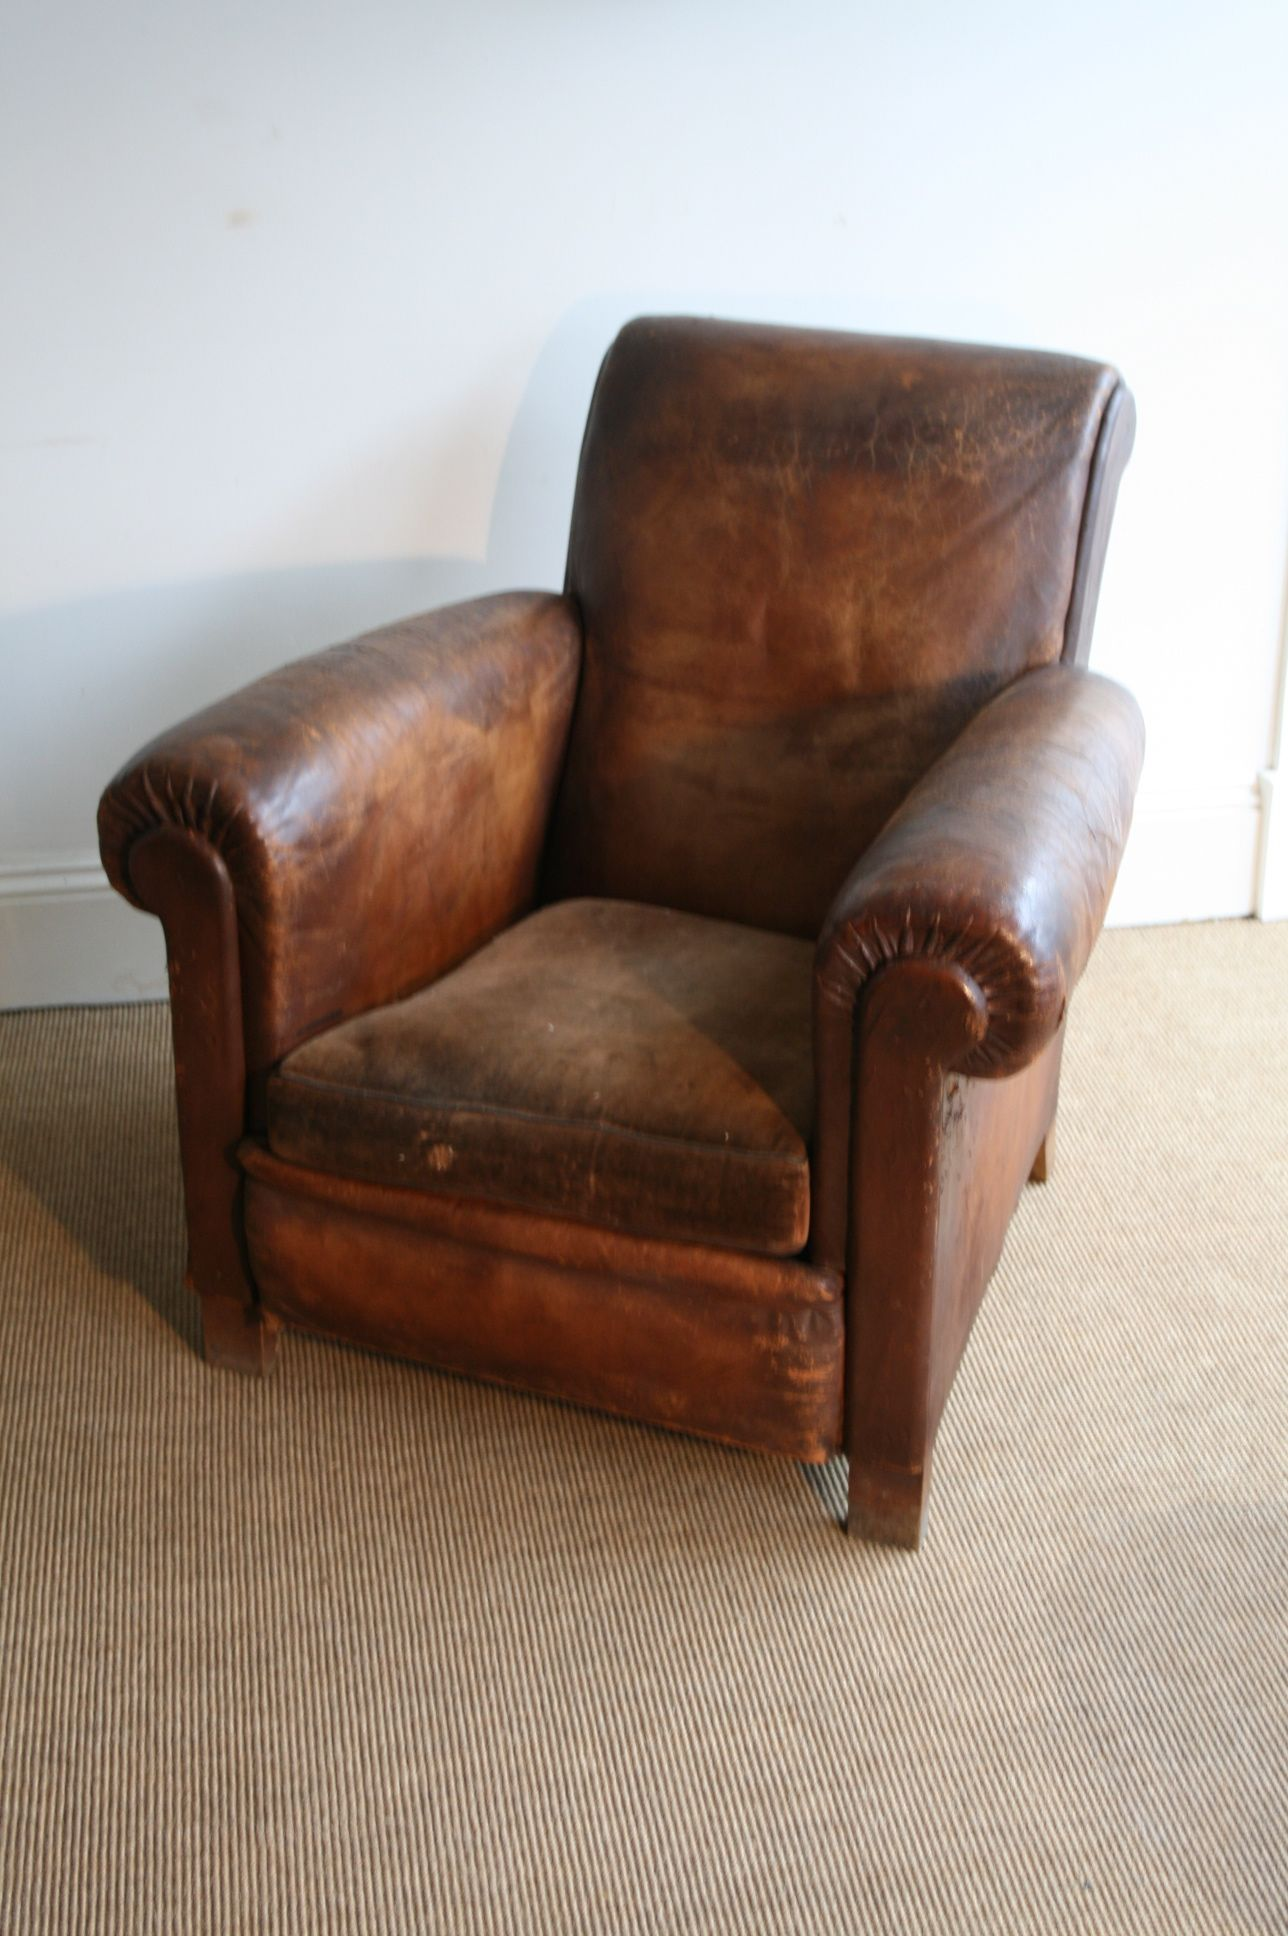 Phenomenal Sometimes An Upholstered Seat On A Leather Chair Can Be A Ibusinesslaw Wood Chair Design Ideas Ibusinesslaworg